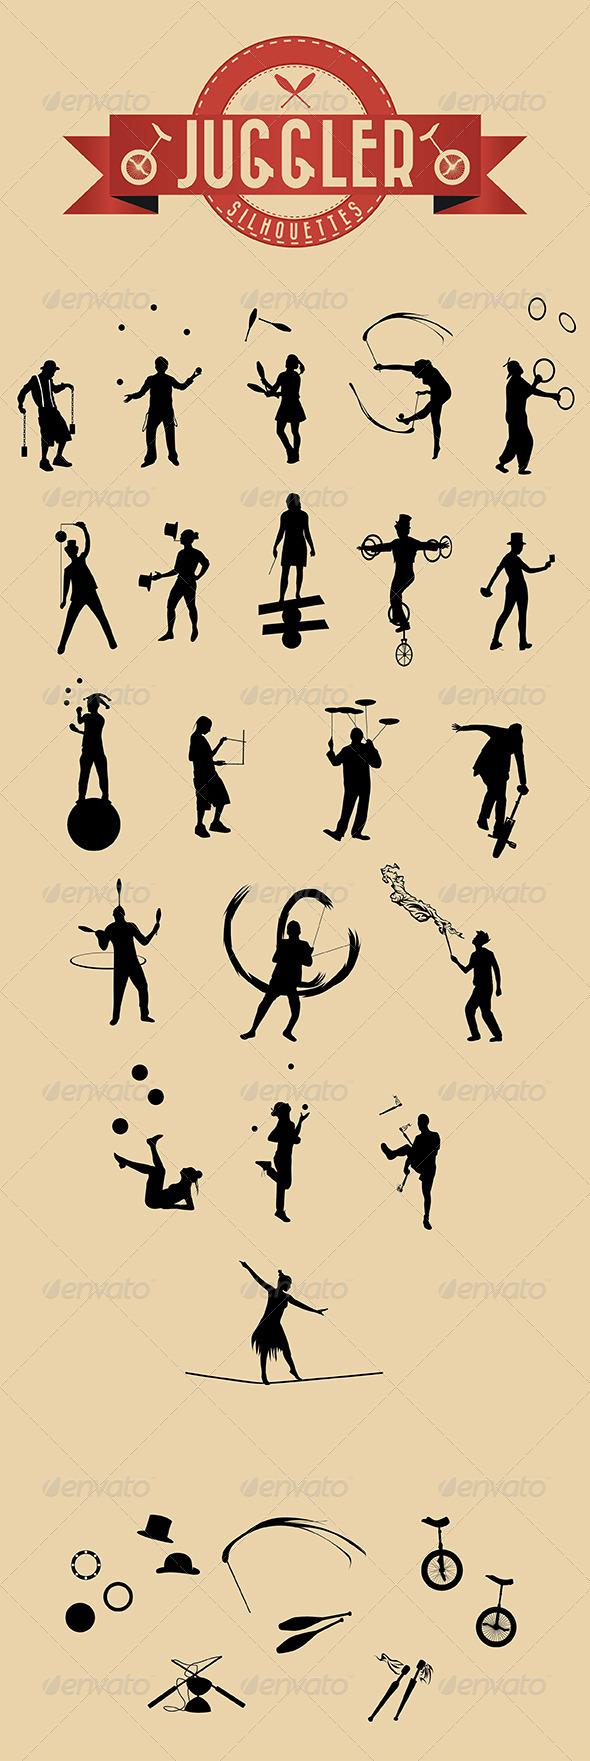 21 Jugglers Vector Silhouettes - Characters Vectors